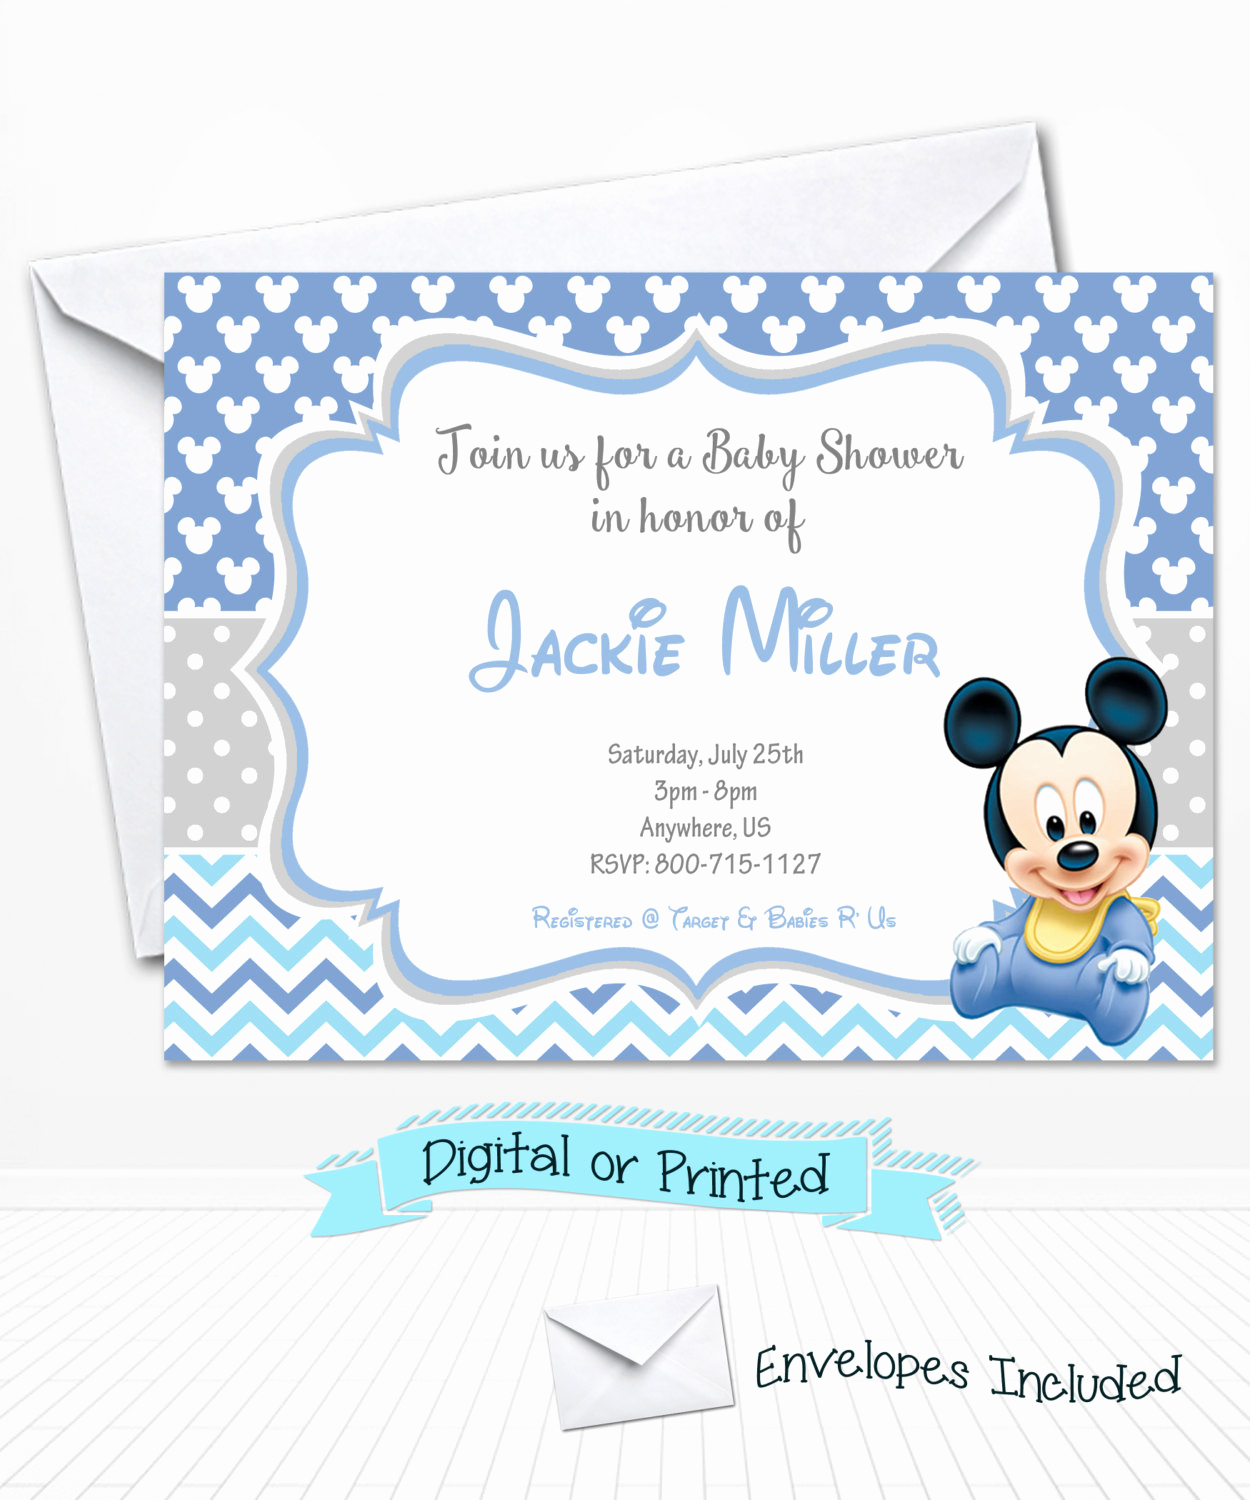 Mickey Mouse Baby Shower Invitation New Baby Mickey Mouse Baby Shower Invitations Printed by